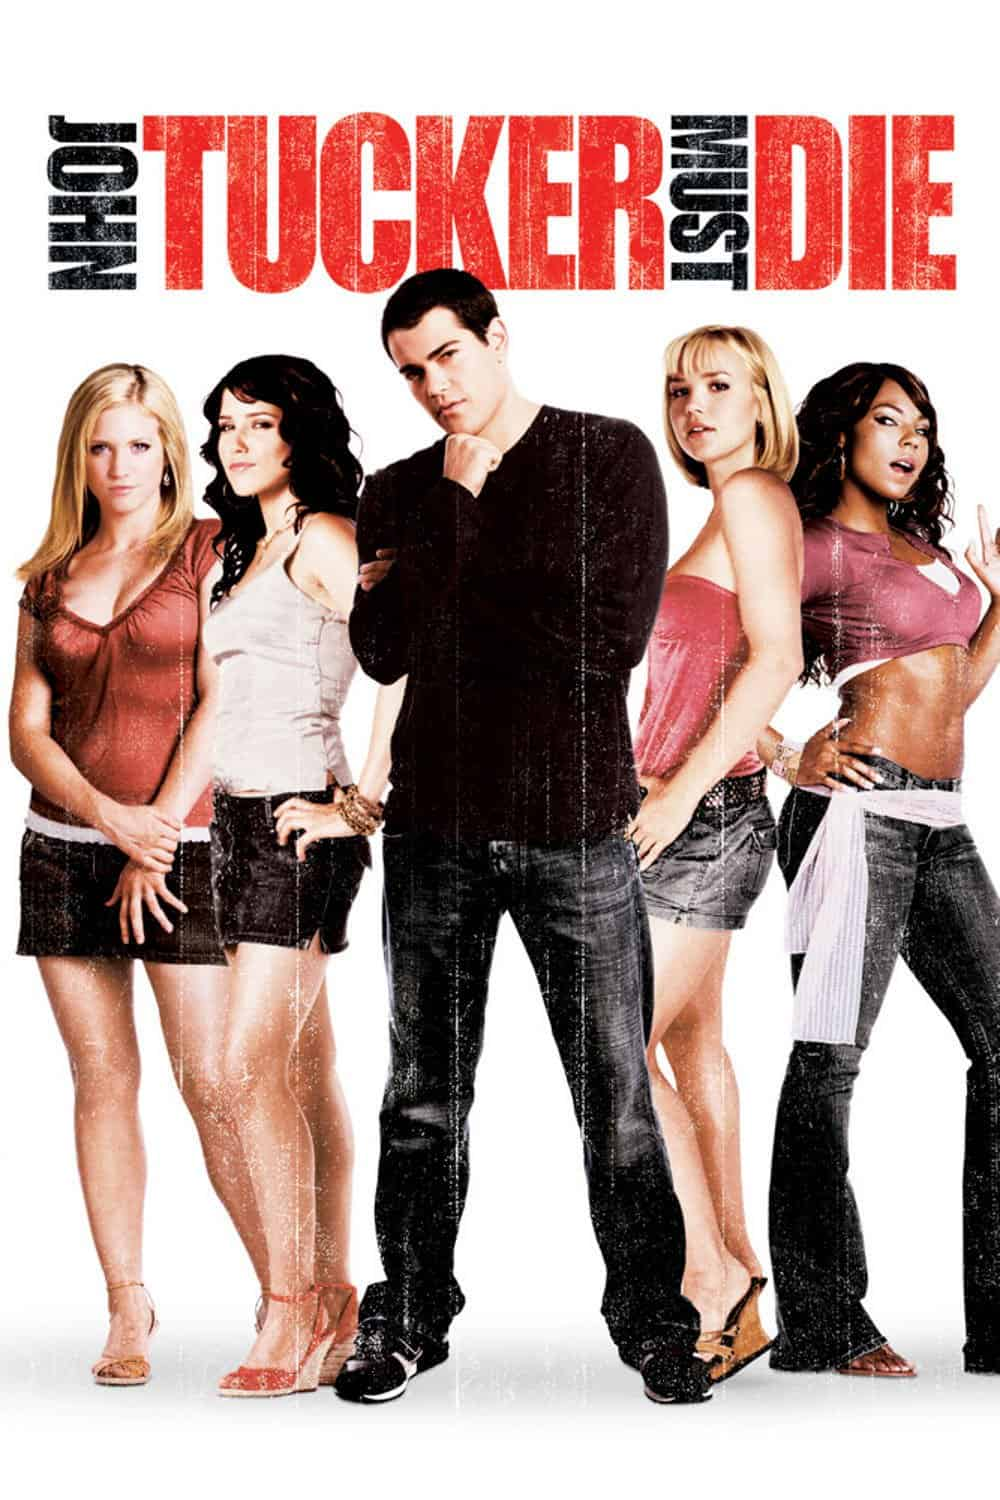 John Tucker Must Die, 2006